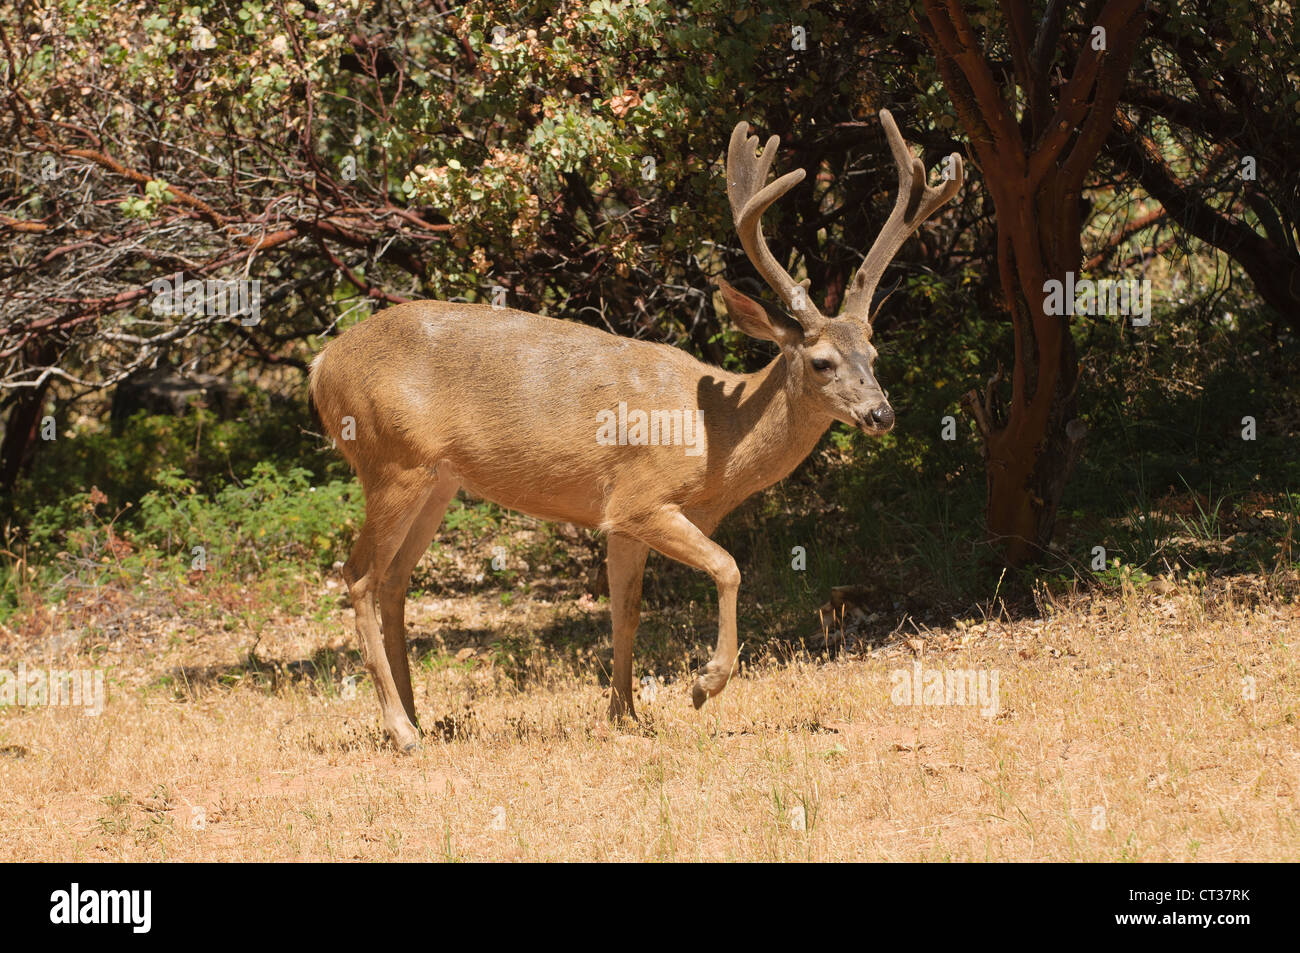 Colombian Black-tailed buck tip-toeing through some logging area - Stock Image